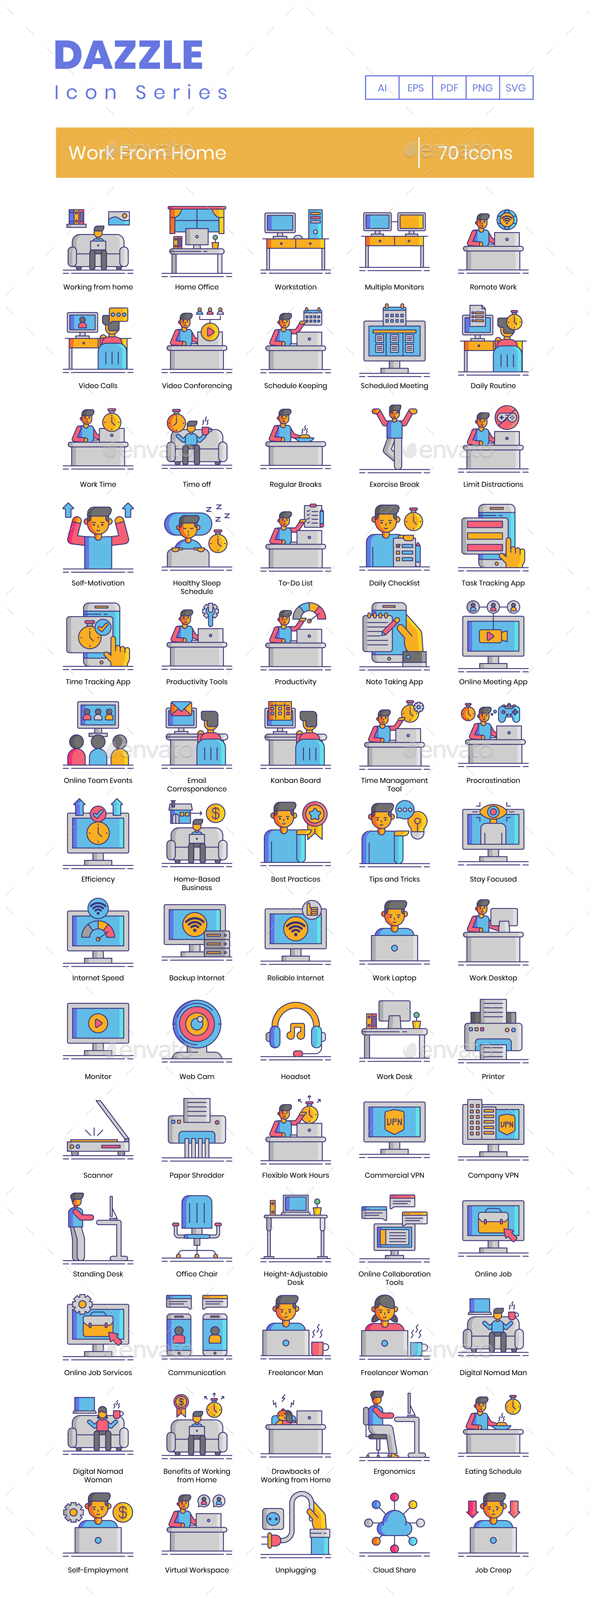 70 Work From Home Icons - Dazzle Series